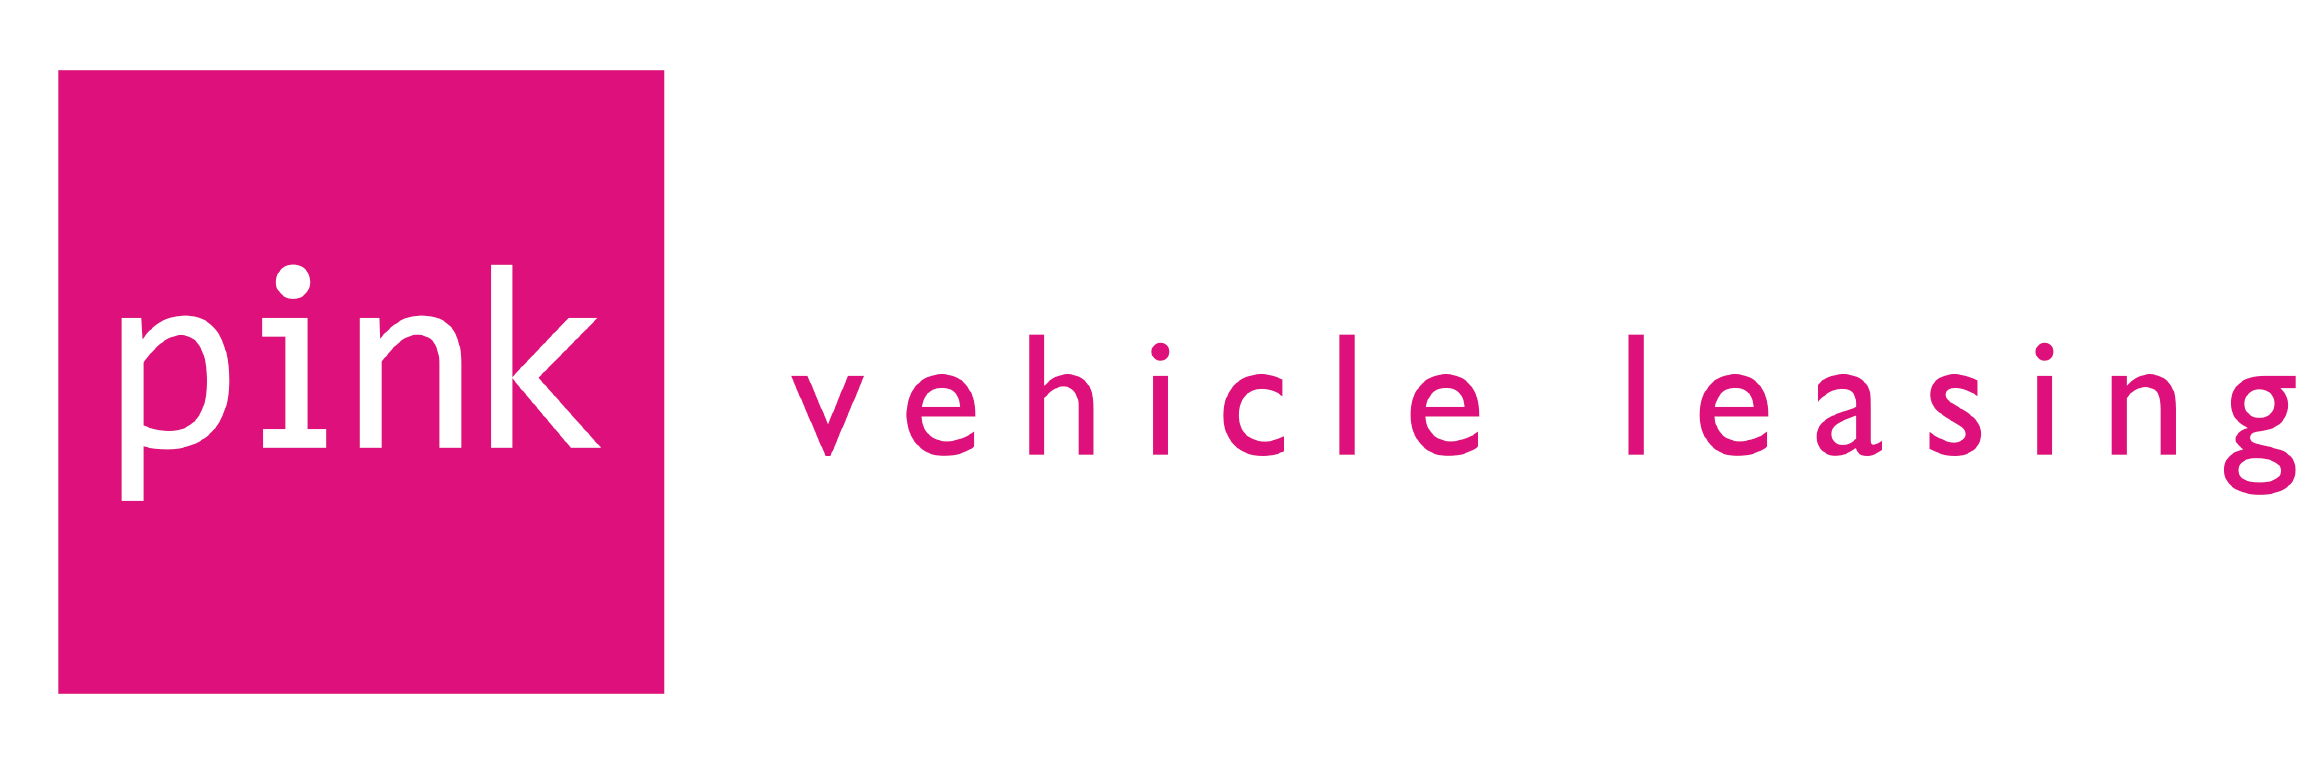 Pink Vehicle Leasing